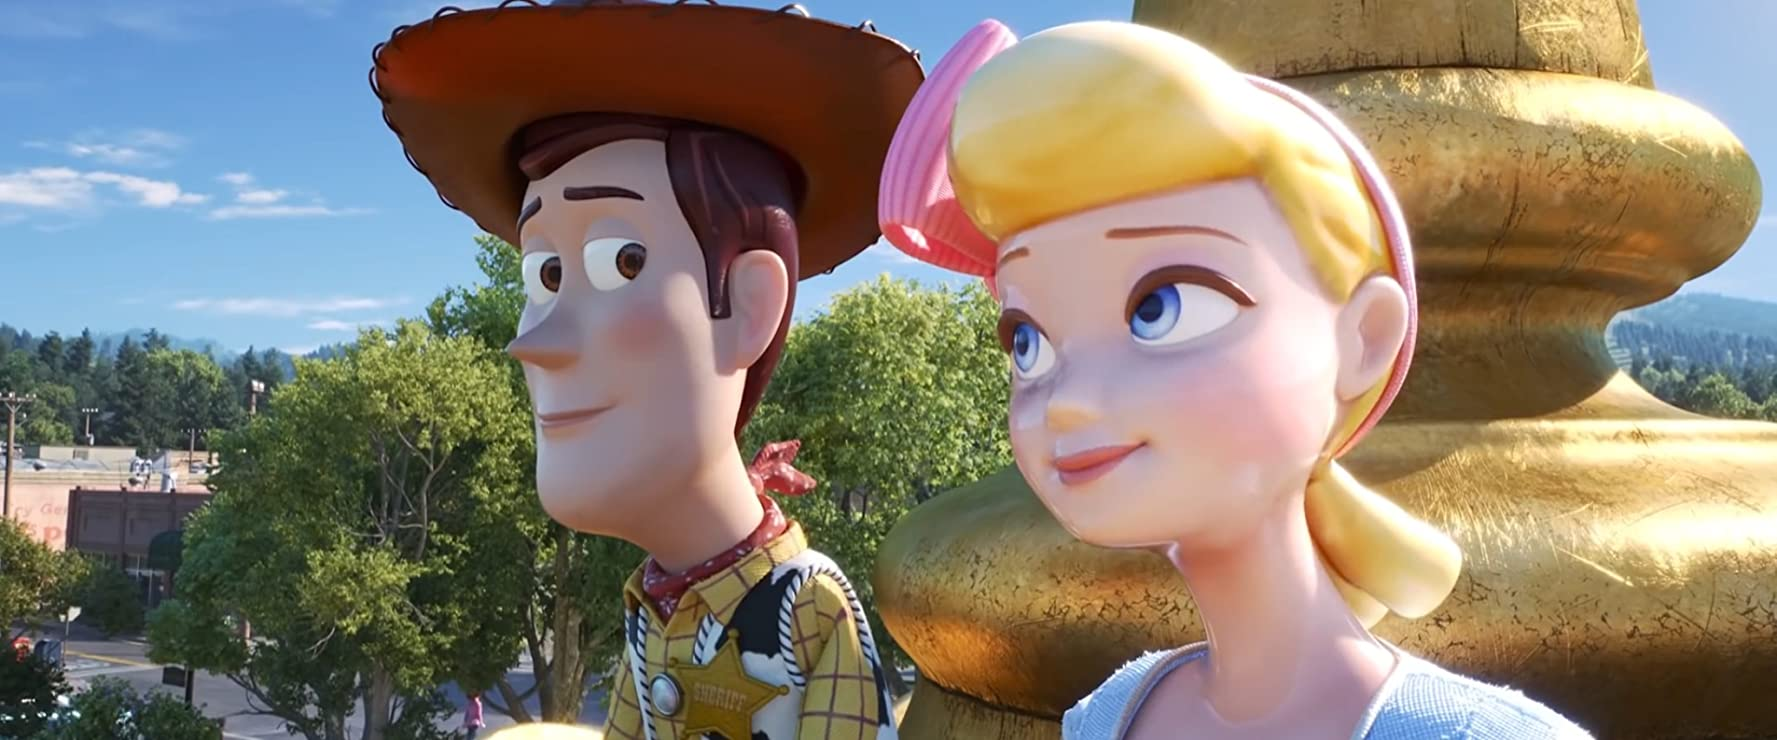 Tom Hanks and Annie Potts in Toy Story 4 (2019)